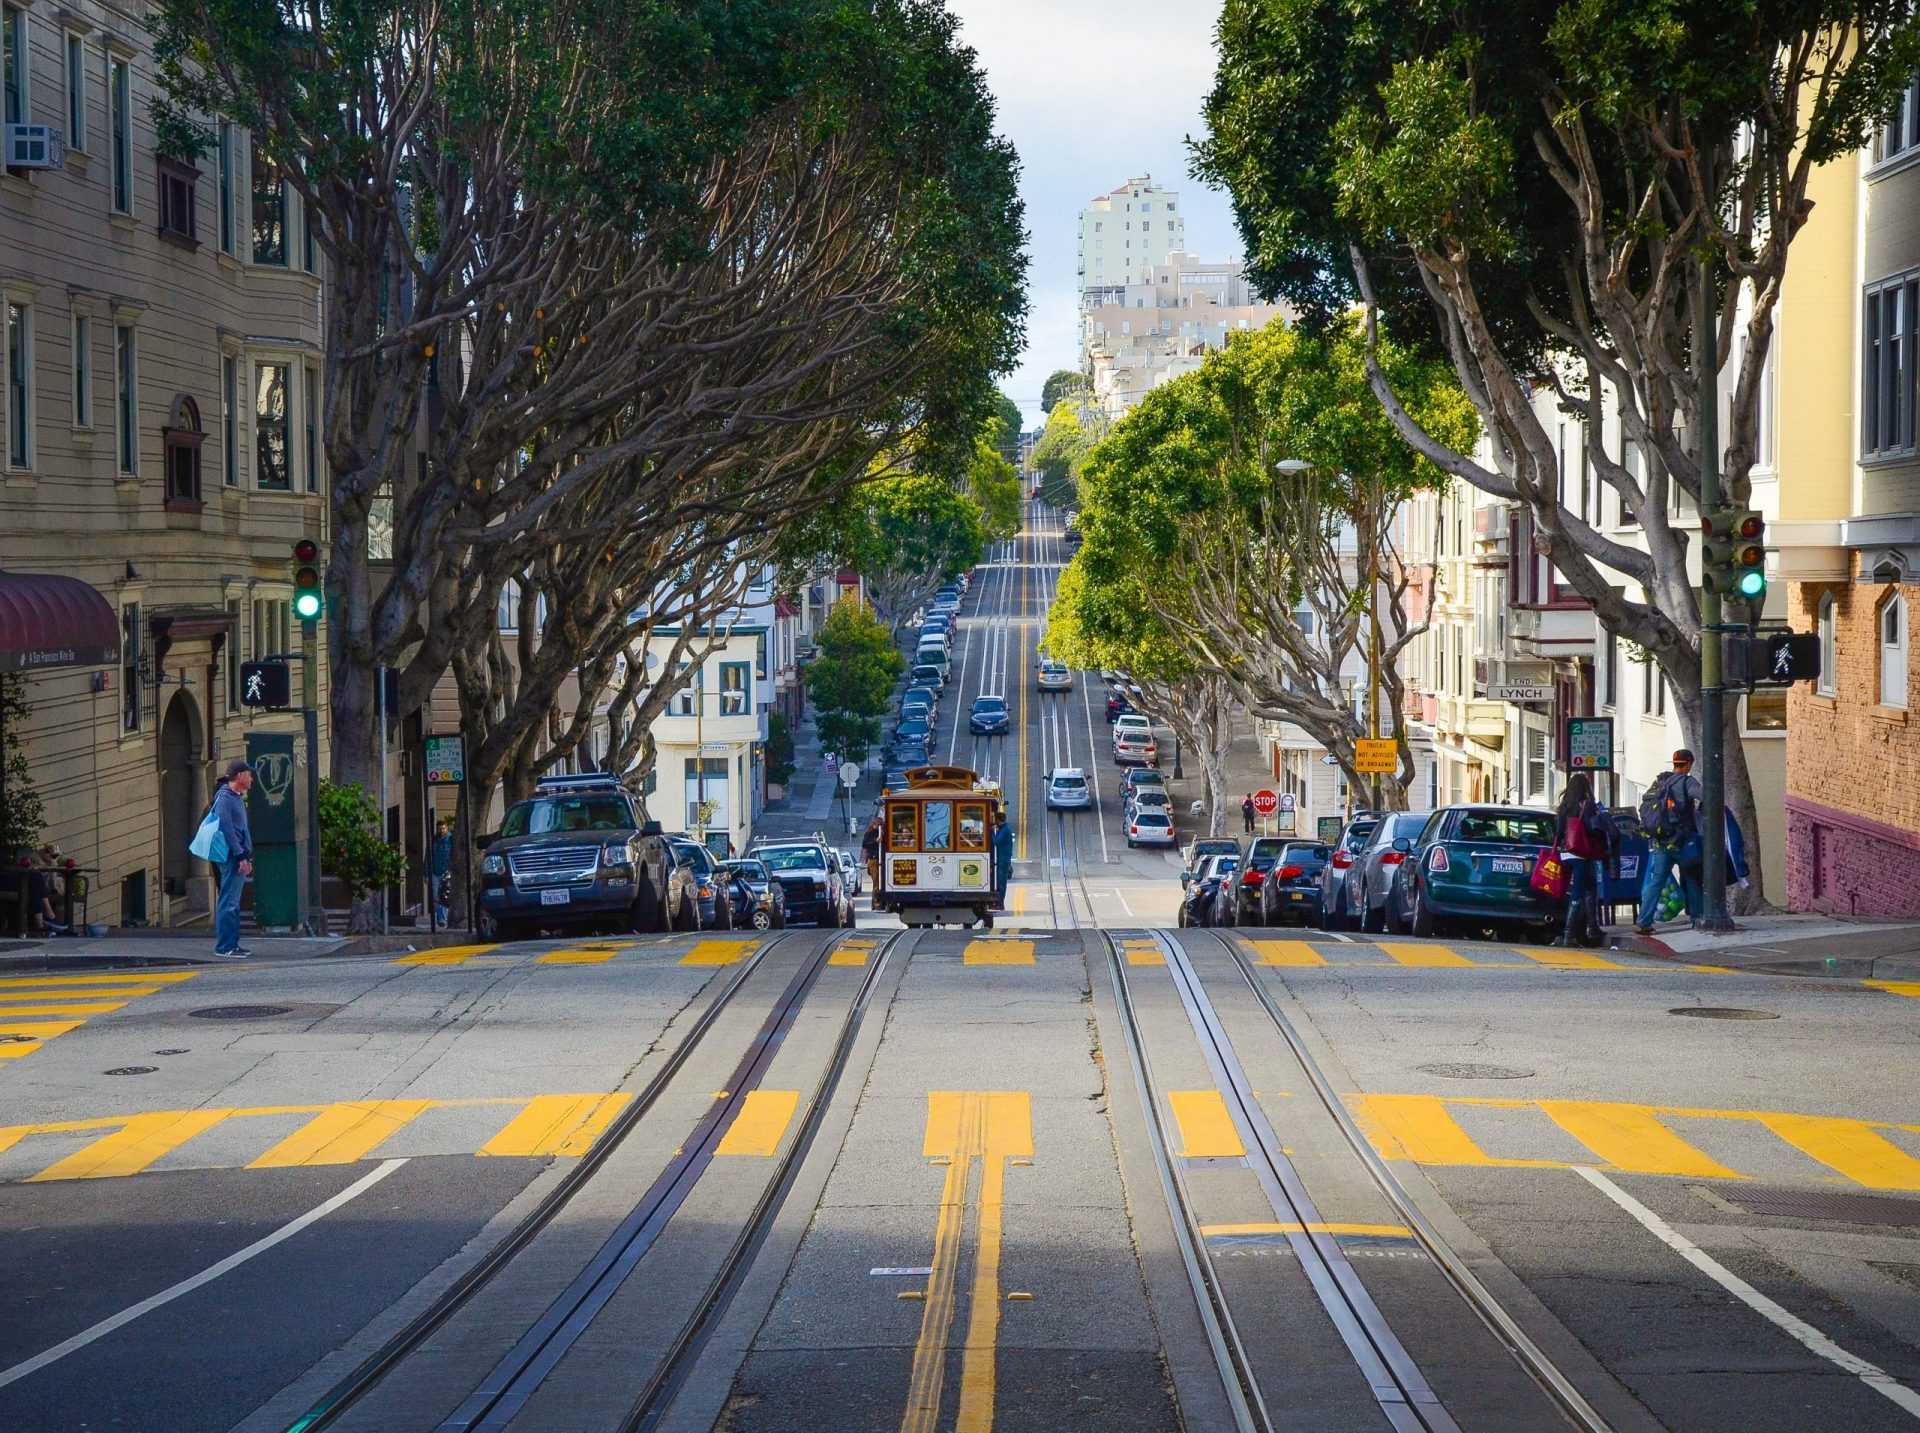 San Francisco tran luxury house and lots for sale when vegan travel | luxury home by brittany corporation